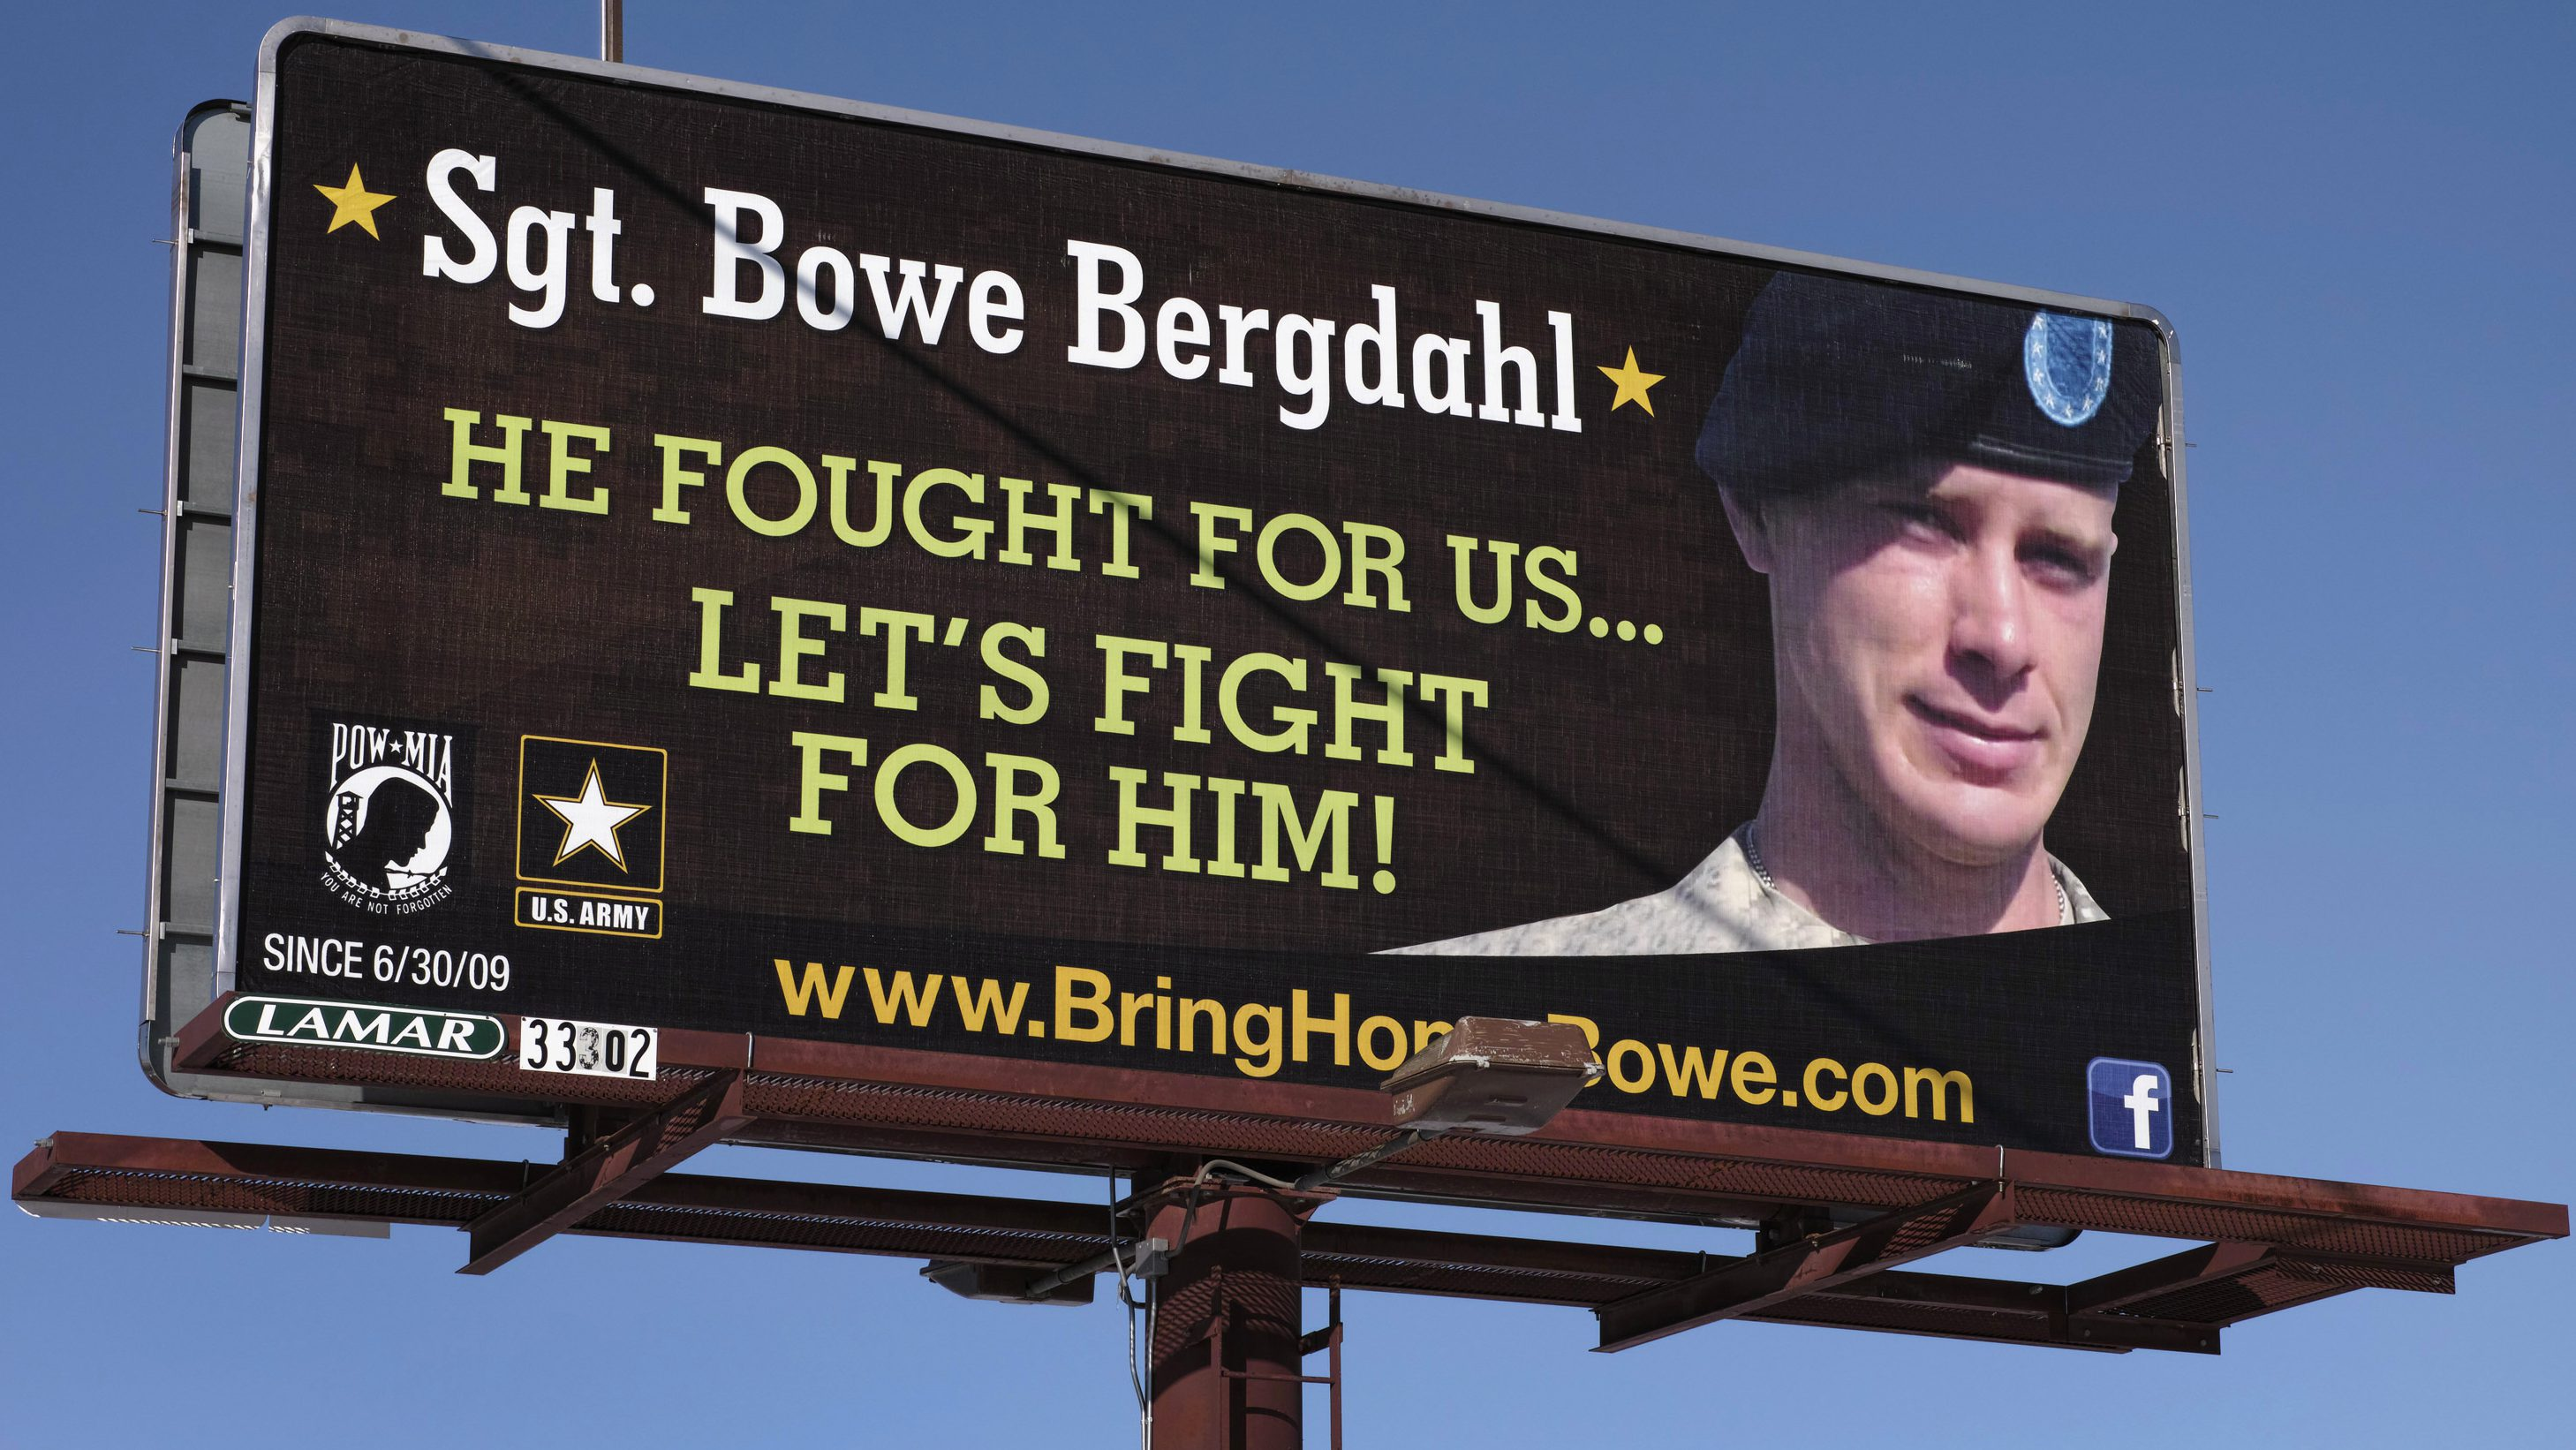 A billboard calling for the release of U.S. Army Sergeant Bowe Bergdahl, held for nearly five years by the Taliban after being captured in Afghanistan, is shown in this picture taken near Spokane, Washington on February 25, 2014. Bergdahl has been released and is now in U.S. custody, President Barack Obama said on May 31, 2014. Picture taken on February 25, 2014.  REUTERS/Jeff T. Green (UNITED STATES - Tags: MILITARY POLITICS CIVIL UNREST CONFLICT TPX IMAGES OF THE DAY) - RTR3RN1O